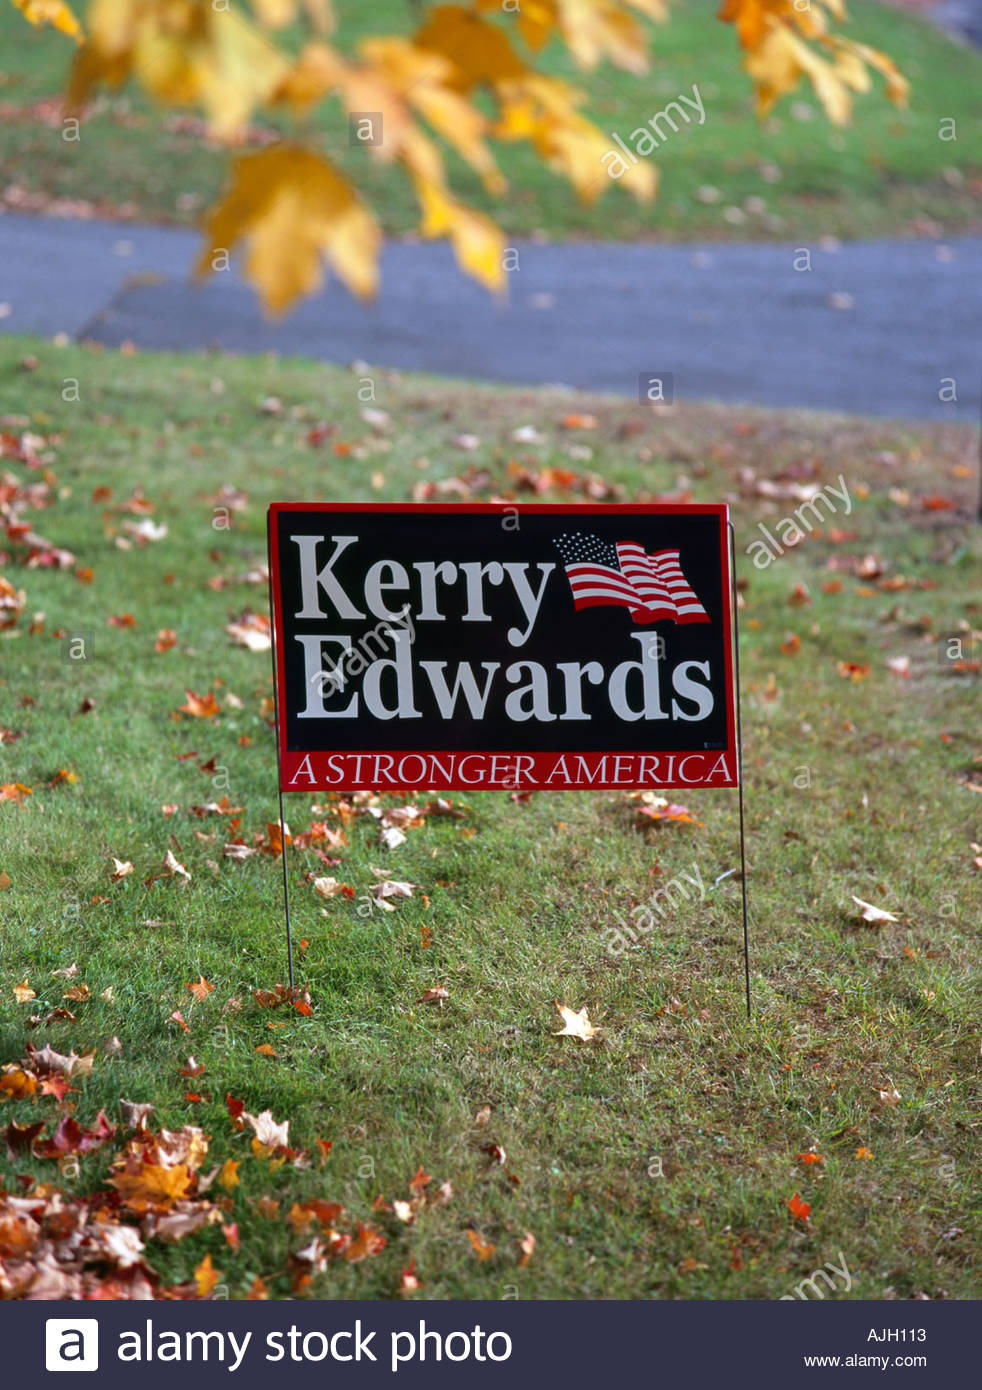 Political billboard during US presidential election Connecticut USA Oct 2004 Stock Photo